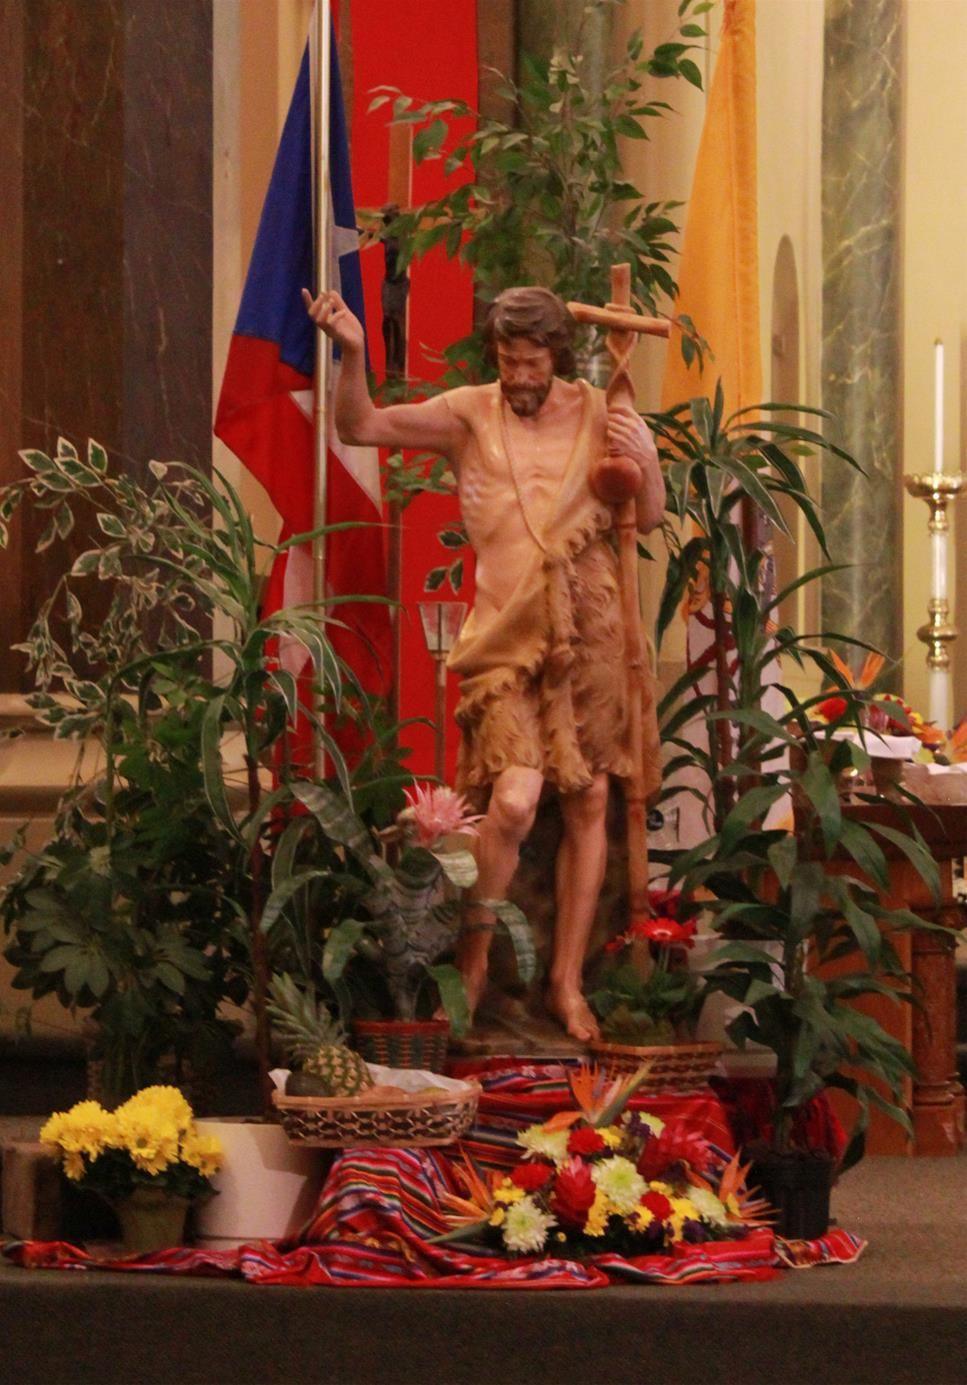 Celebration of St. John the Baptist Patron of Puerto Rico